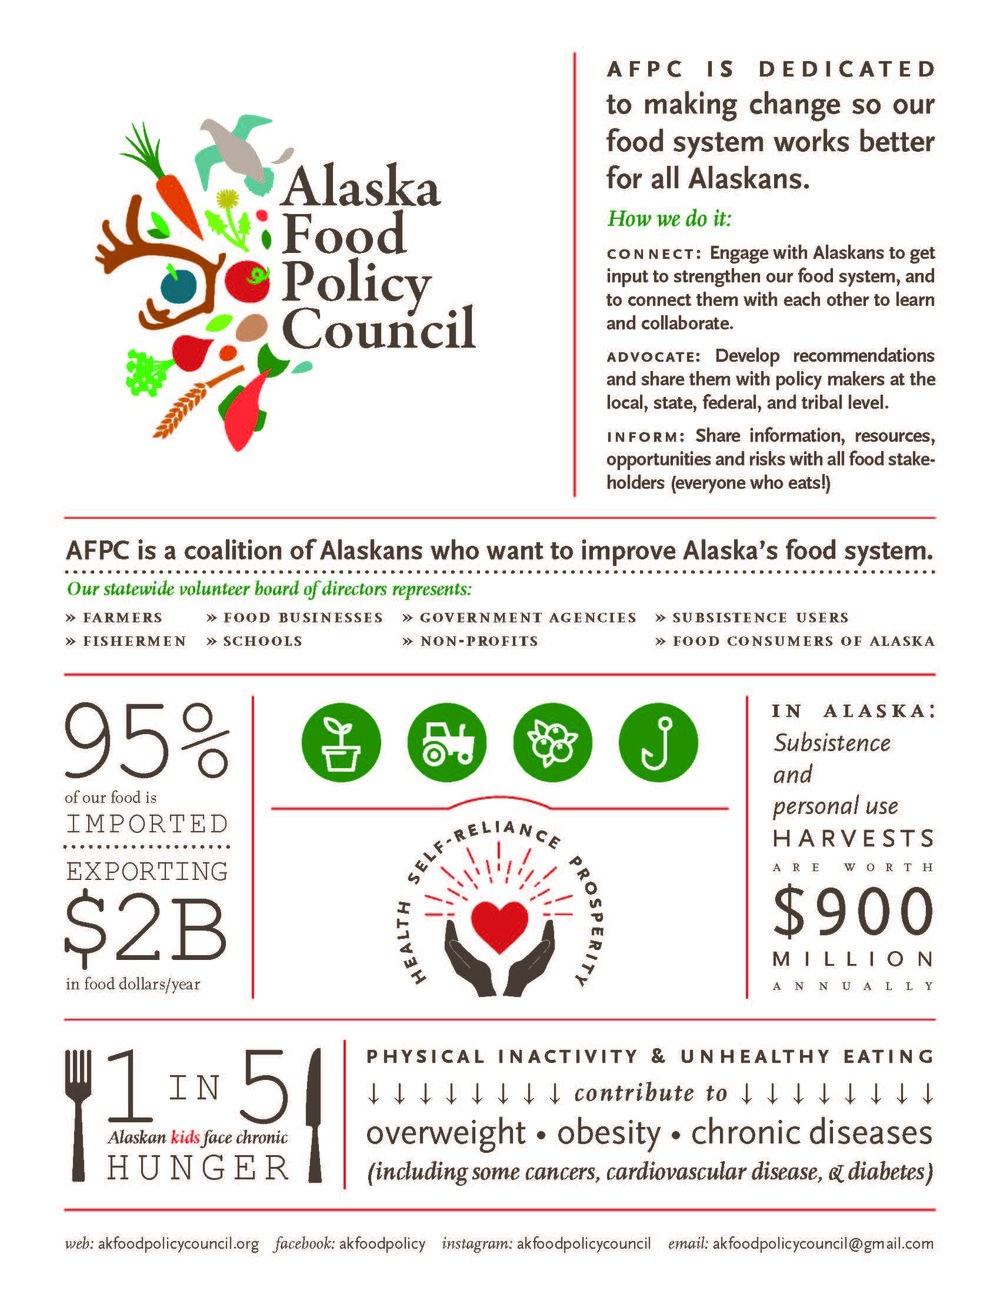 AFPC is excited to announce the new infographic that captures the Council's mission to create a healthier, more secure, and more self-reliant Alaska by improving our food system. Thank you to Rising Tide Communications for capturing our mission so beautifully!